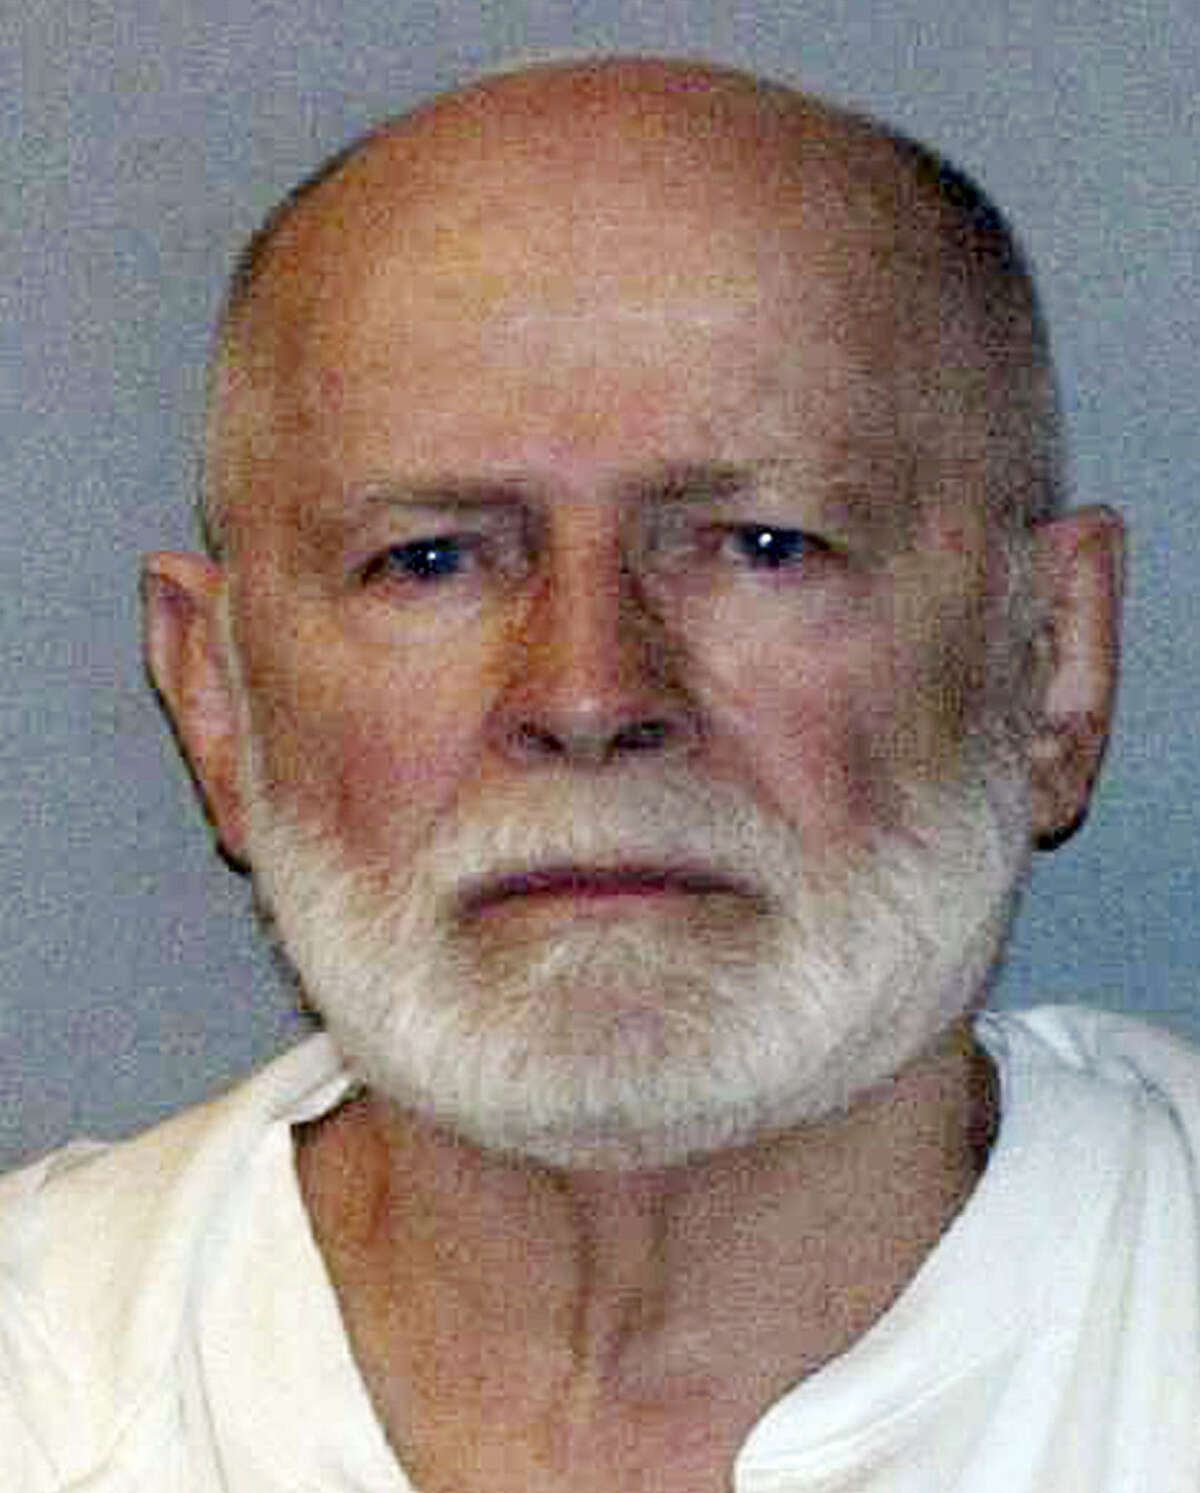 Whitey Bulger, 83, is convicted of several gangland crimes.